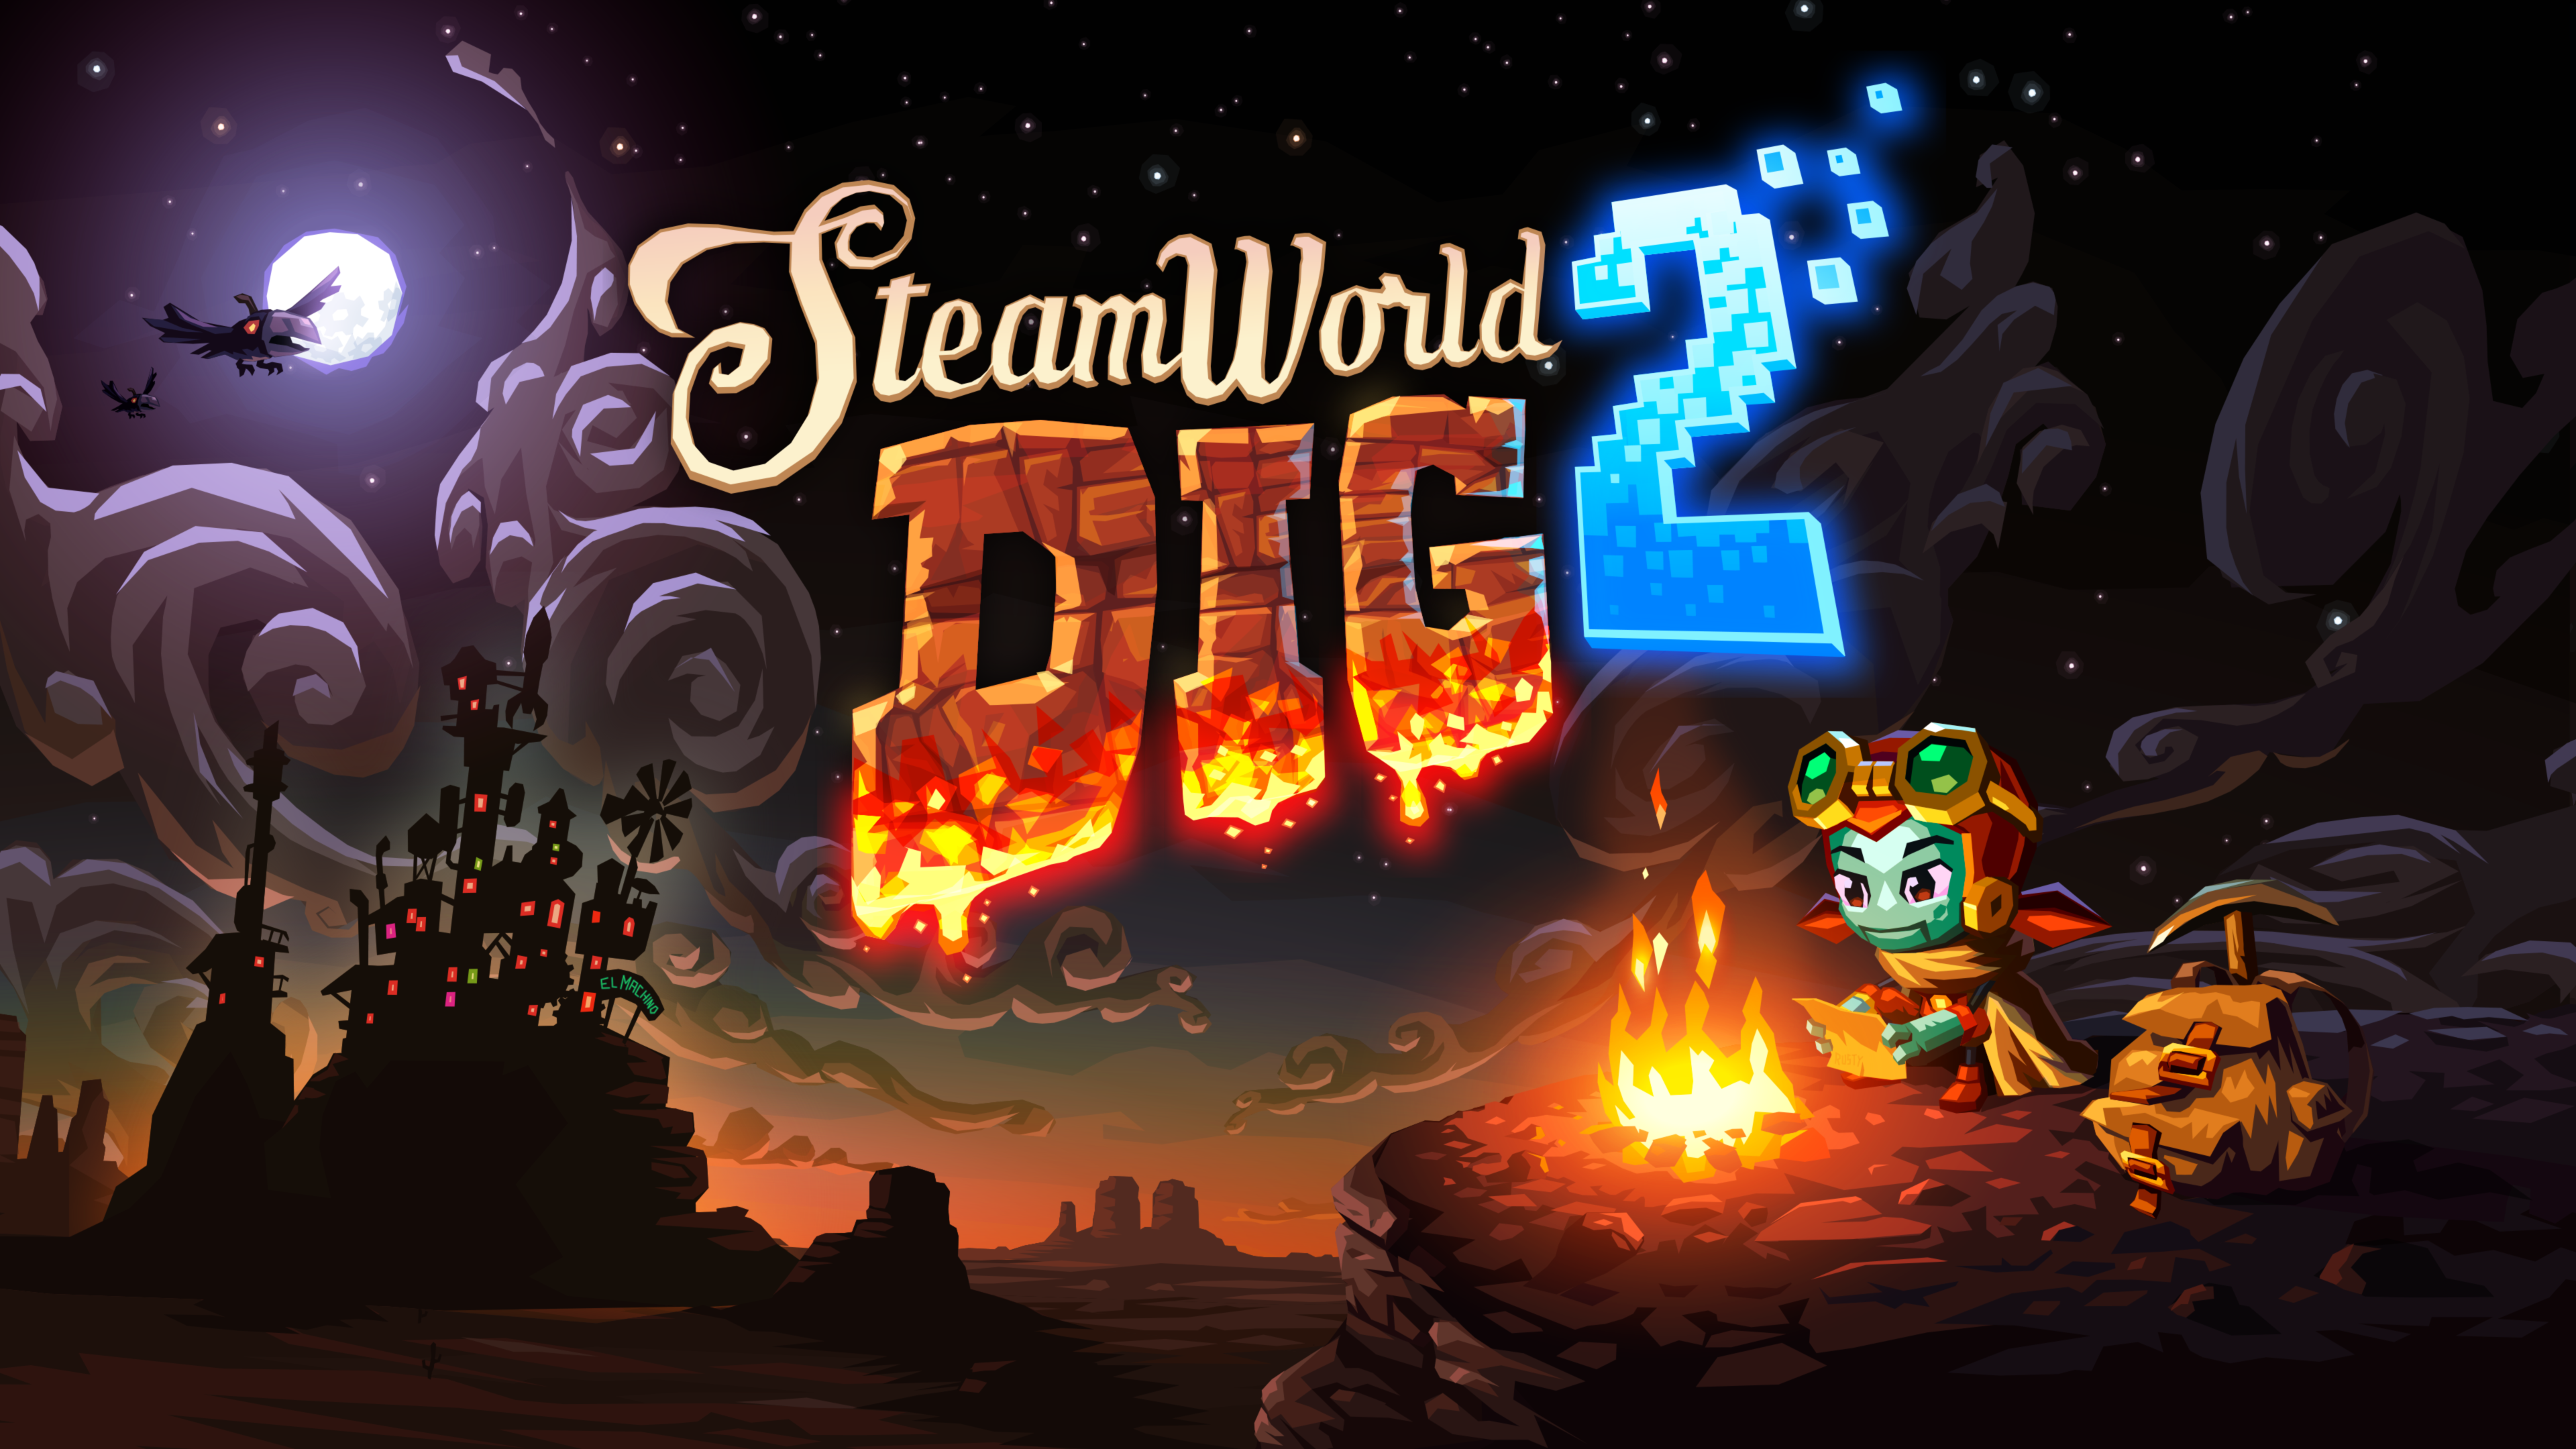 SteamWorld Dig 2 Wallpaper 4K